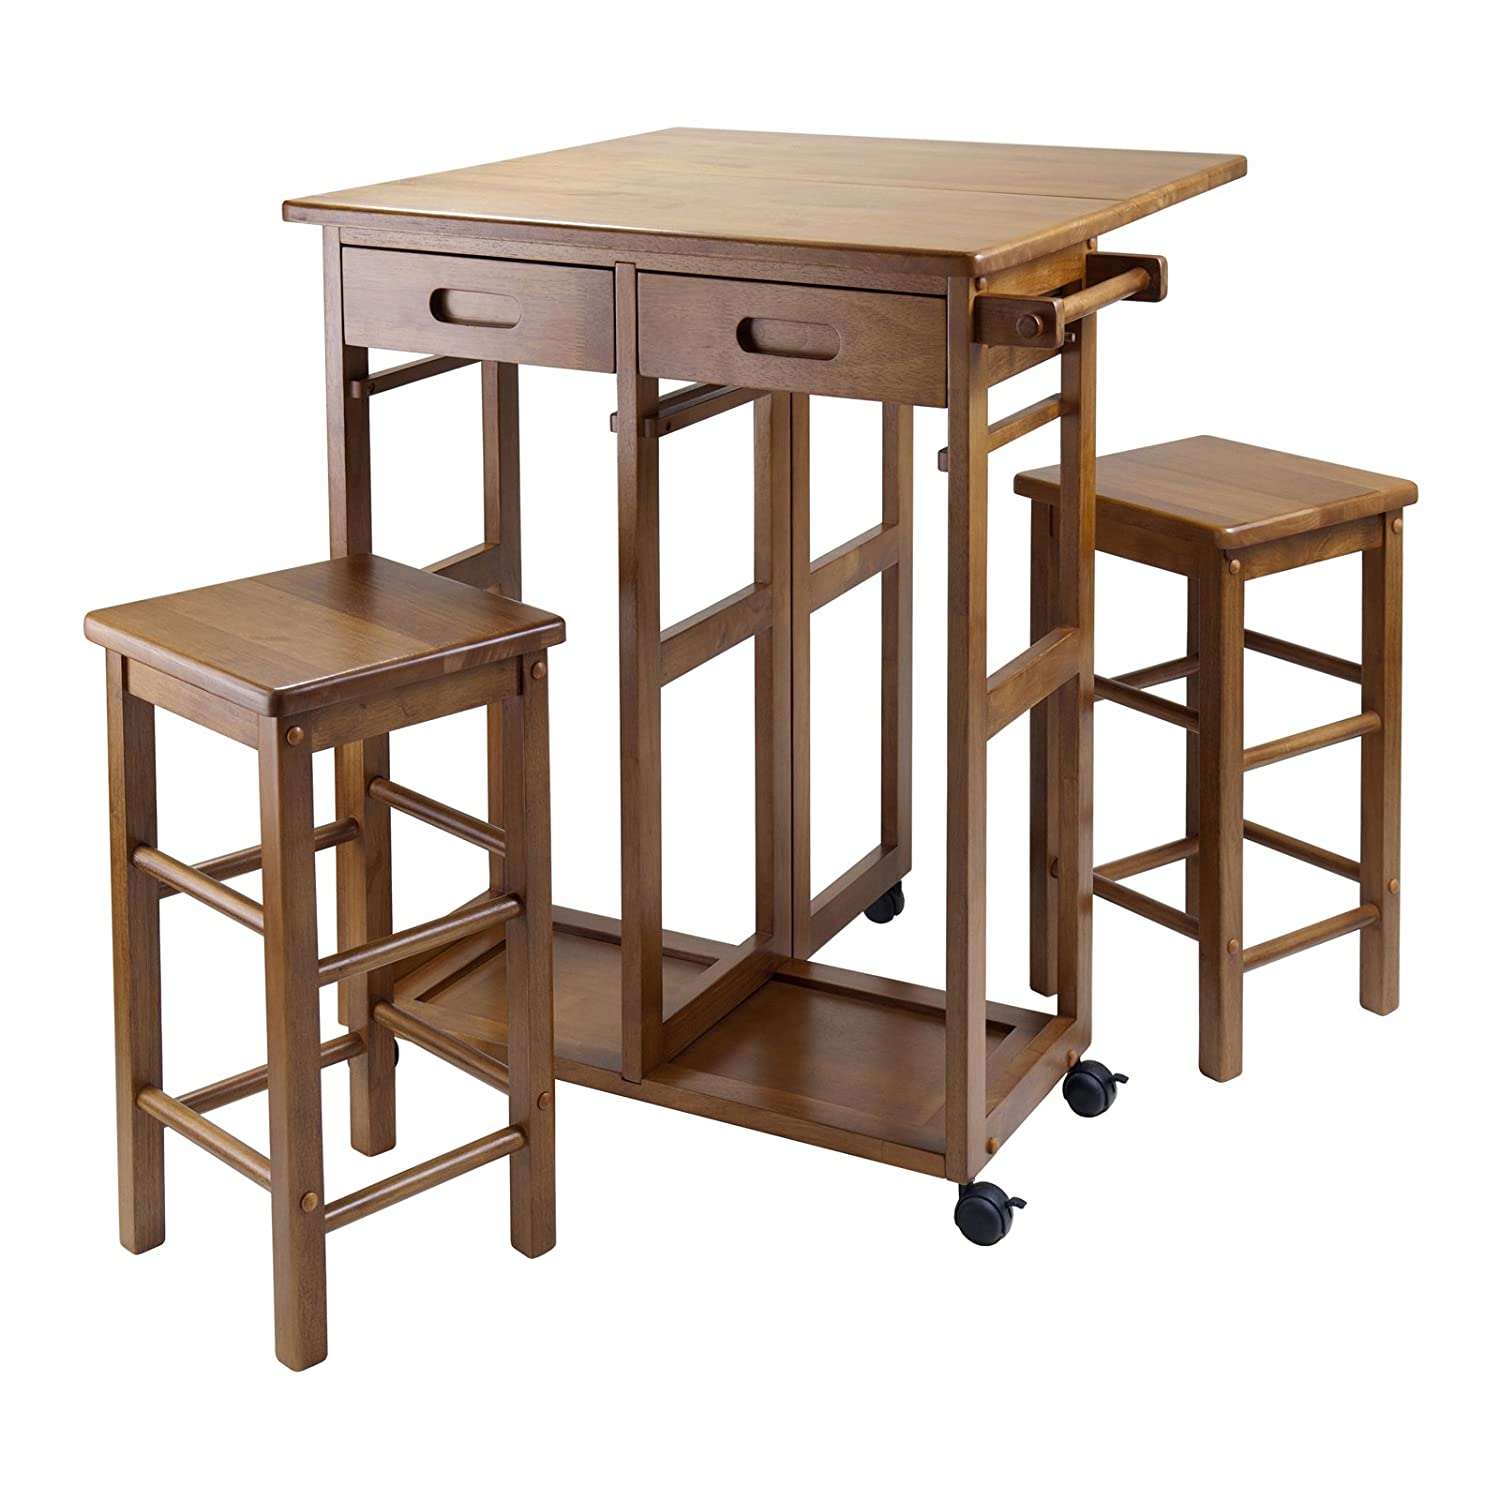 amazoncom winsome wood beachwood breakfast bar table chair sets breakfast bars furniture